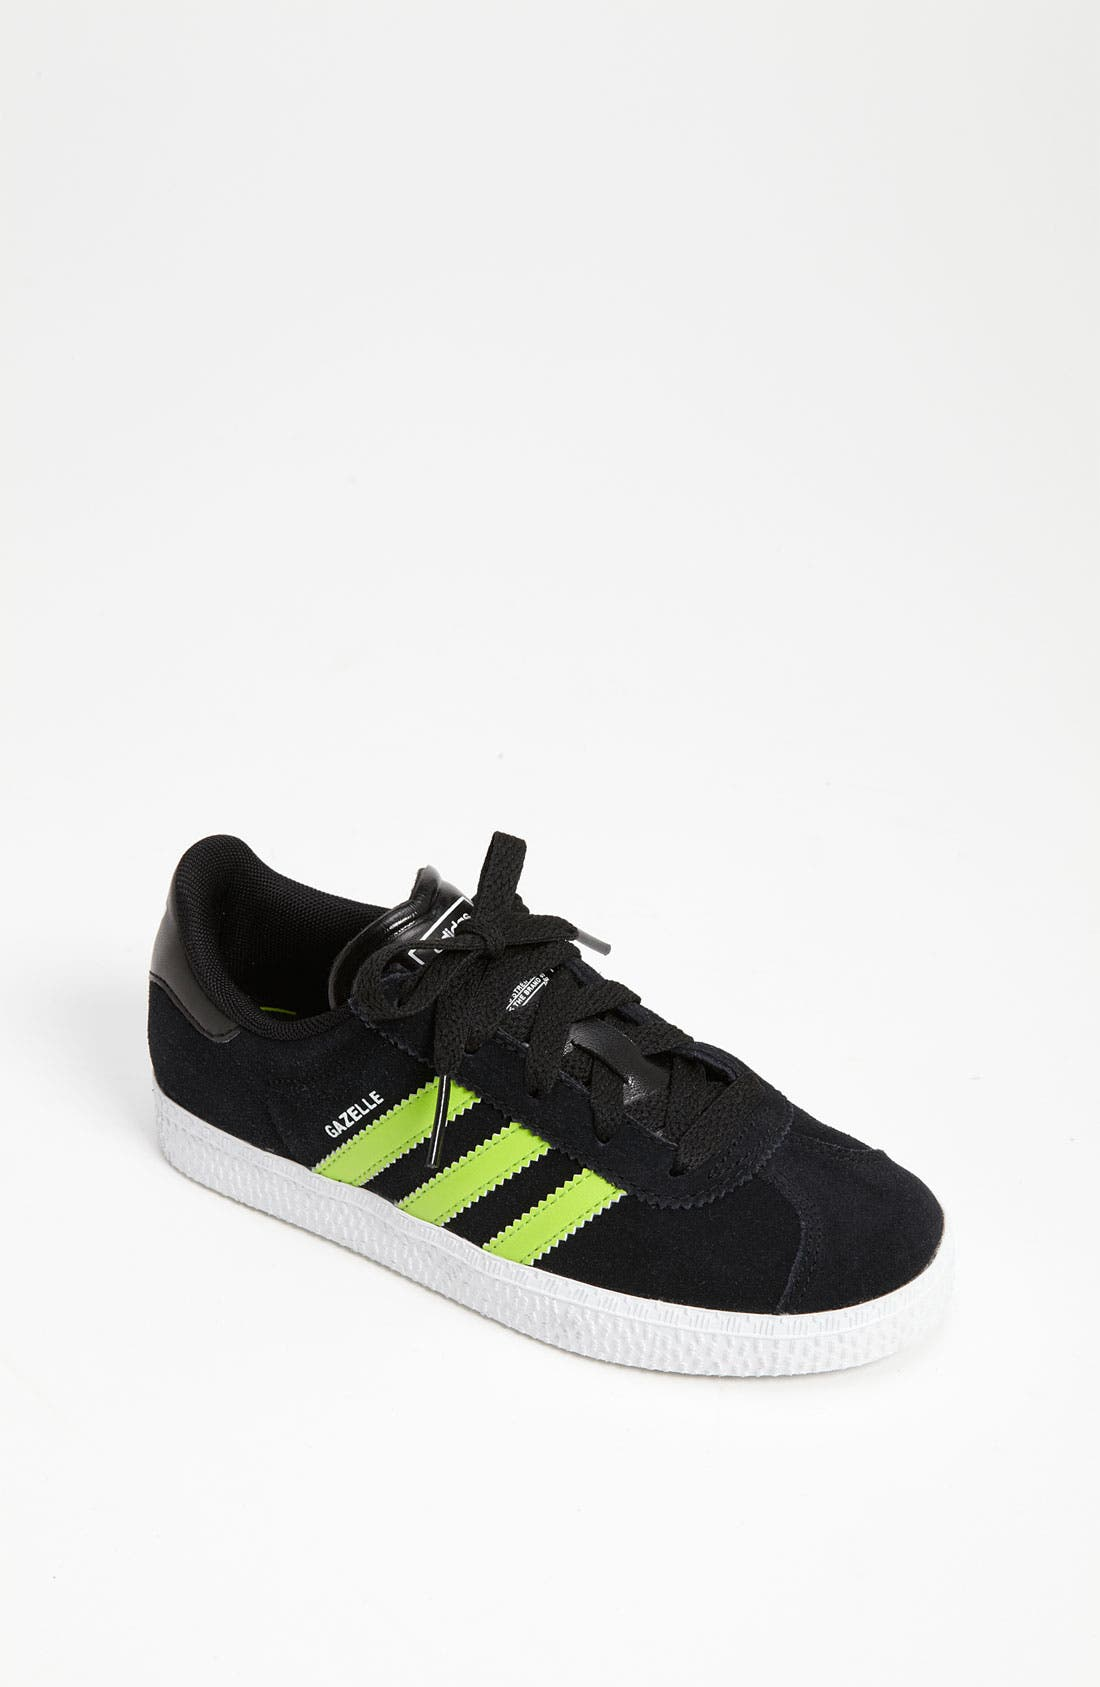 Main Image - adidas 'Gazelle' Sneaker (Toddler, Little Kid & Big Kid)